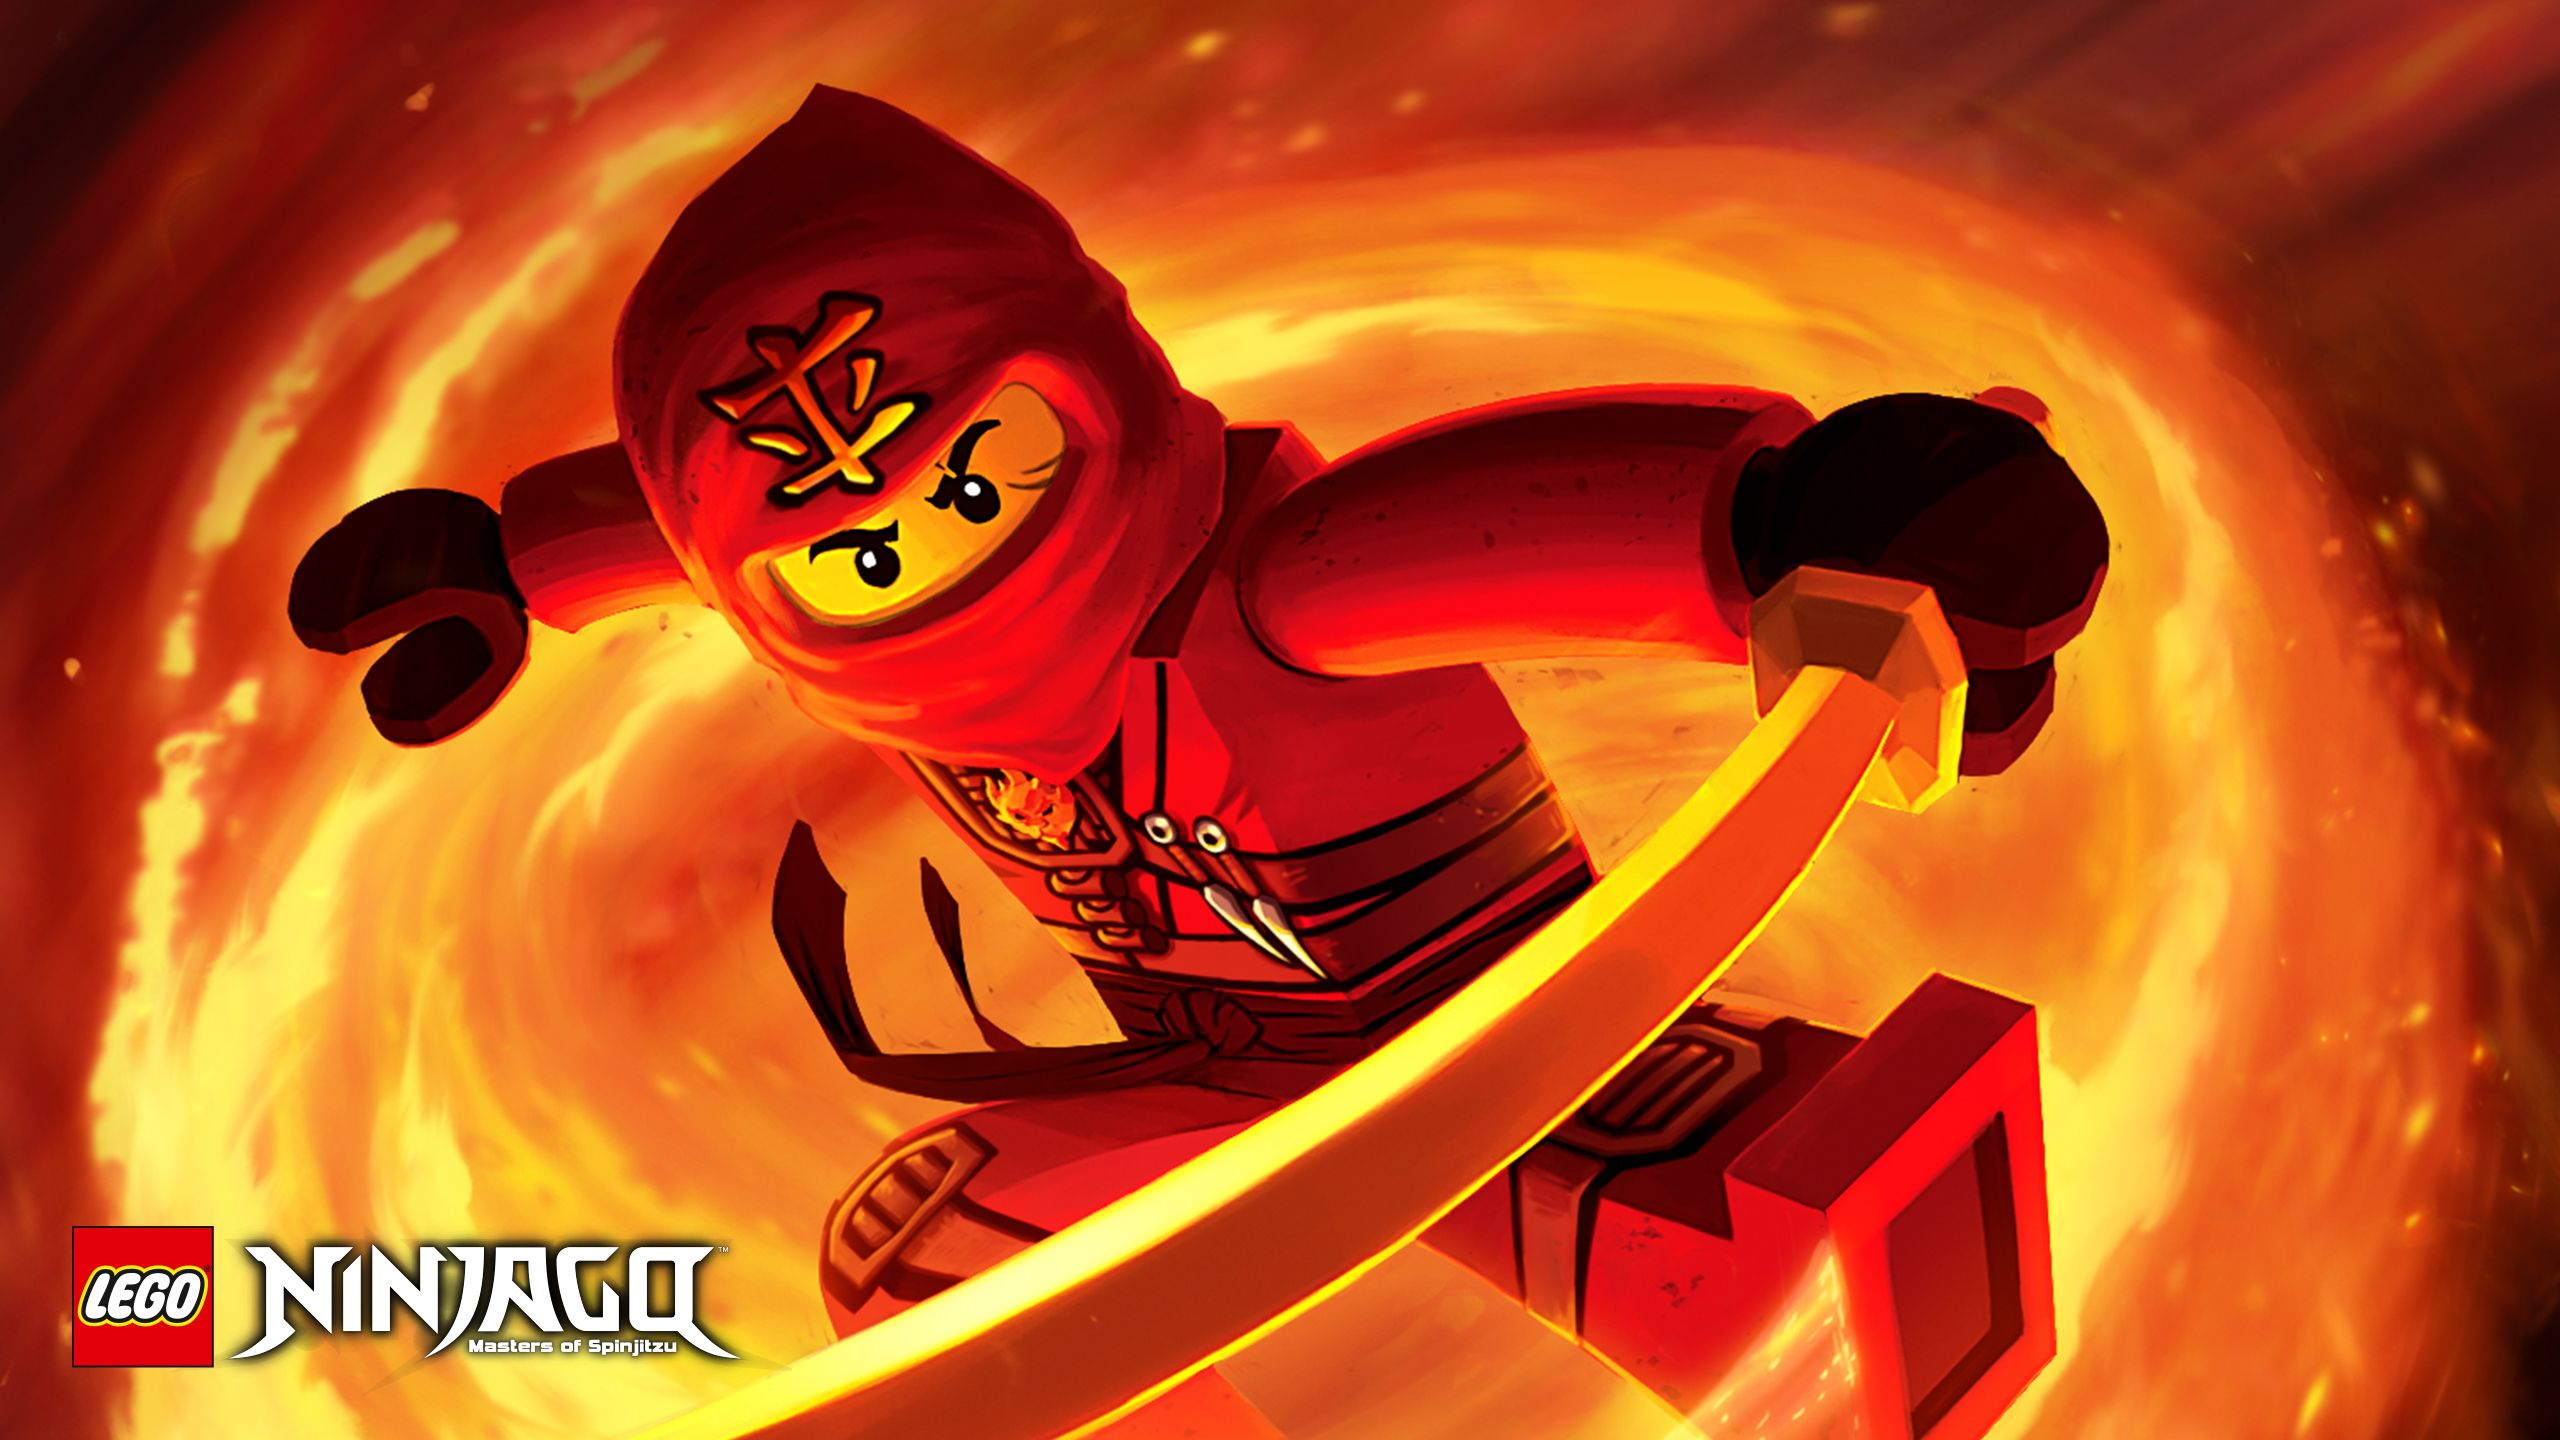 2560x1440 Kai Poster - Tournament of Elements - Wallpapers - LEGO® NINJAGO ...